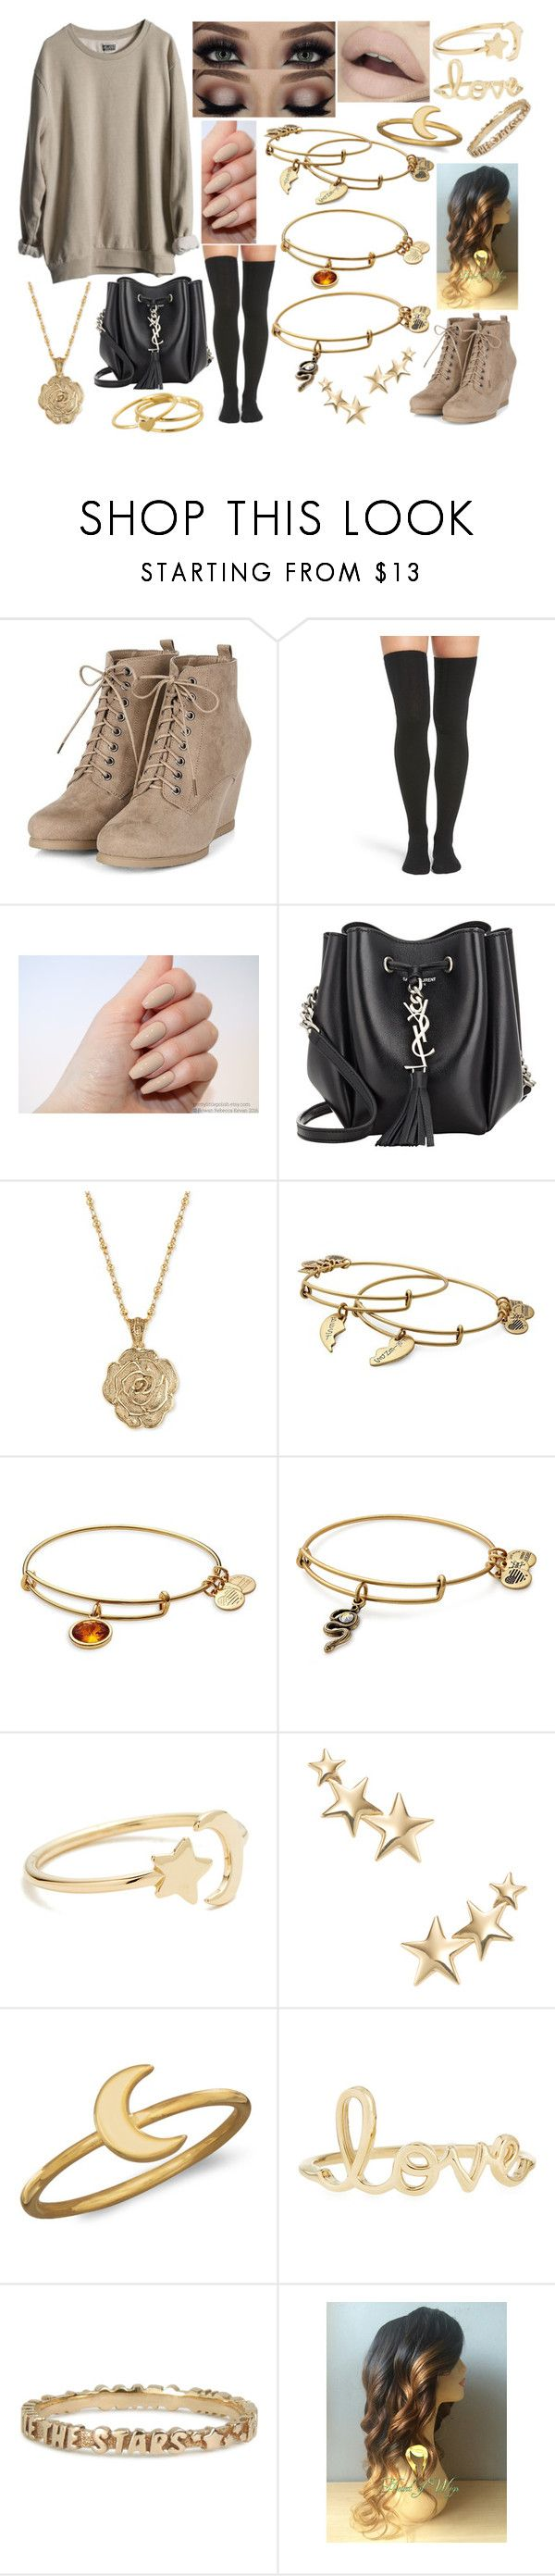 """""""OOTD-Tuesday, April 25"""" by kenziebandgeek ❤ liked on Polyvore featuring MTWTFSS Weekday, Peony & Moss, tarte, Yves Saint Laurent, 2028, Alex and Ani, Ariel Gordon, Kenneth Jay Lane, BillyTheTree and Sydney Evan"""